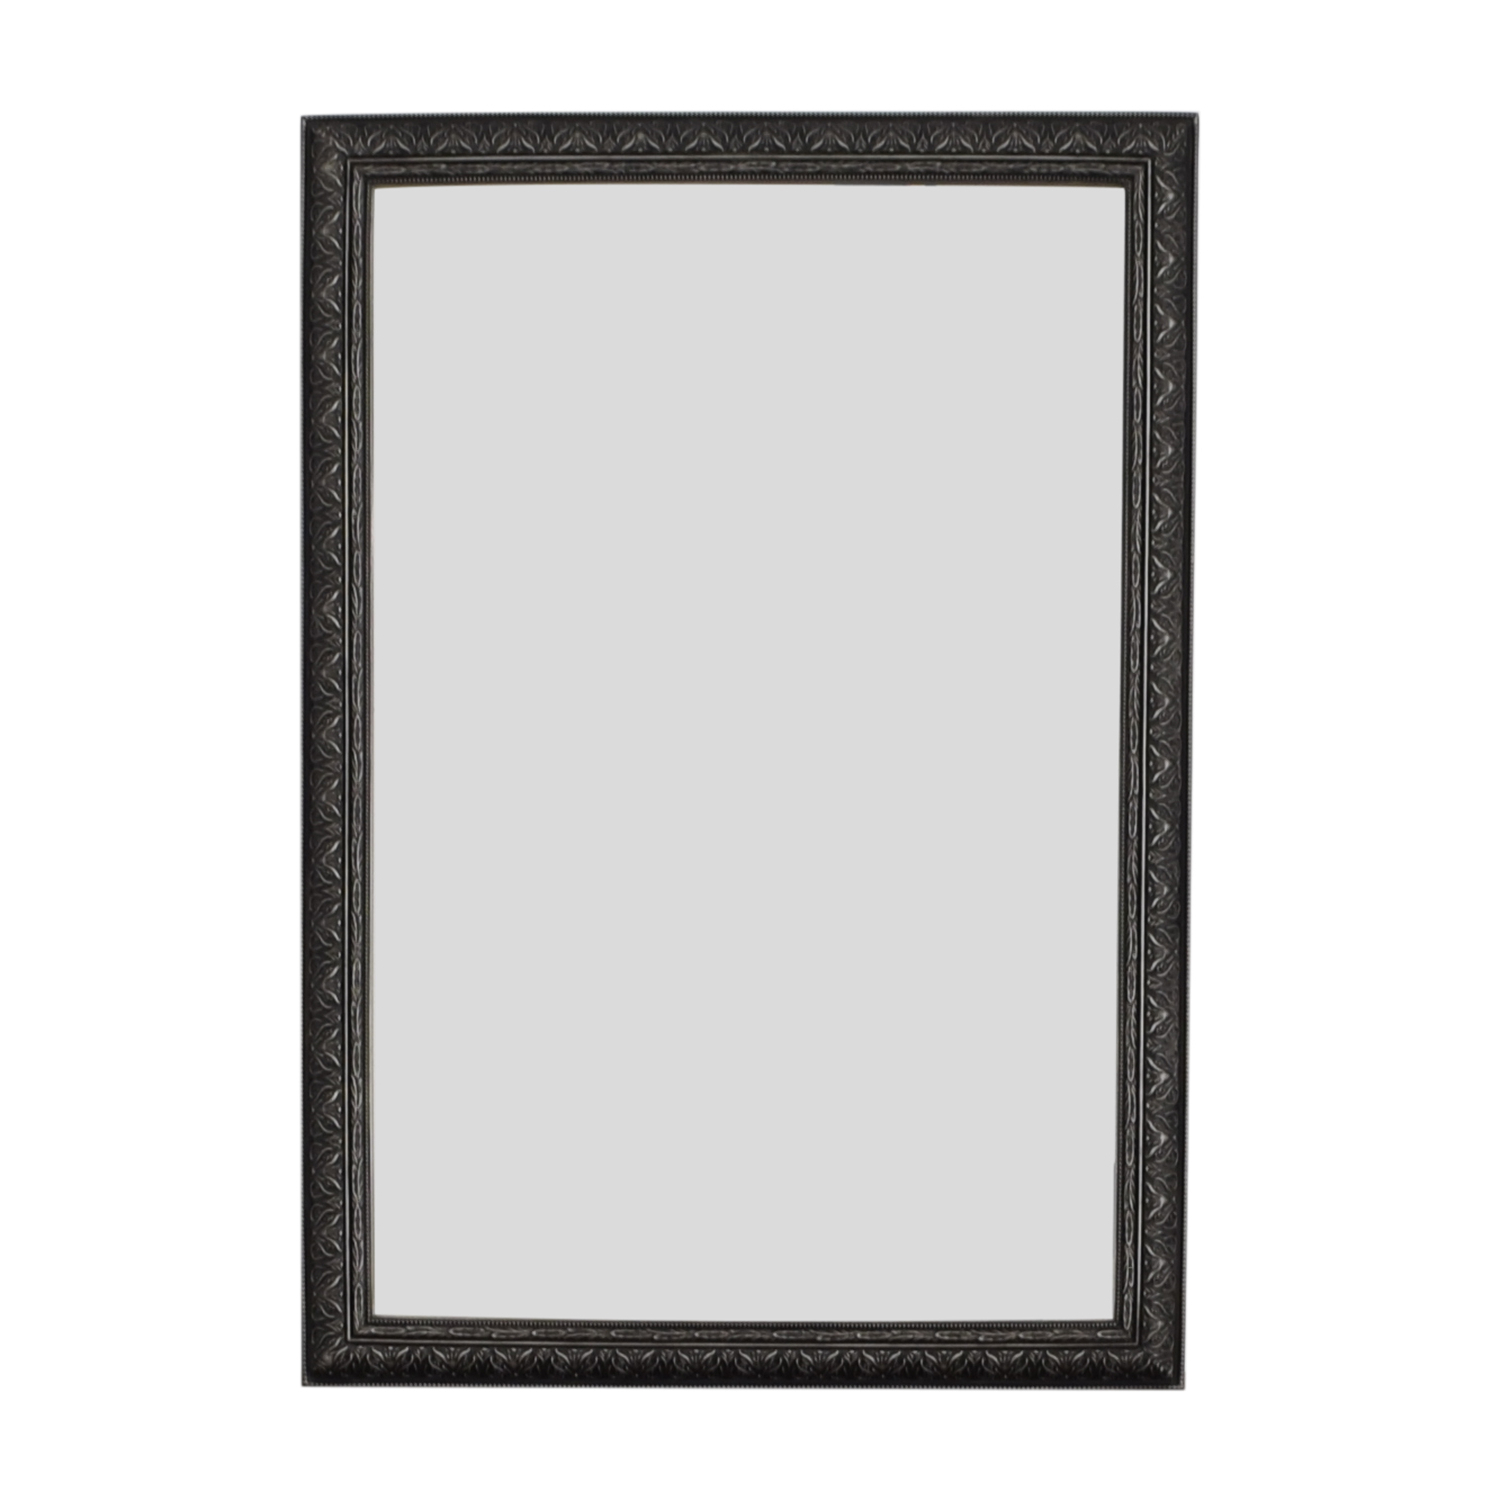 [%66% Off – Pottery Barn Pottery Barn Framed Wall Mirror / Decor In Most Popular Pottery Barn Wall Mirrors|Pottery Barn Wall Mirrors Throughout Most Popular 66% Off – Pottery Barn Pottery Barn Framed Wall Mirror / Decor|Well Known Pottery Barn Wall Mirrors For 66% Off – Pottery Barn Pottery Barn Framed Wall Mirror / Decor|Well Known 66% Off – Pottery Barn Pottery Barn Framed Wall Mirror / Decor With Pottery Barn Wall Mirrors%] (View 1 of 20)